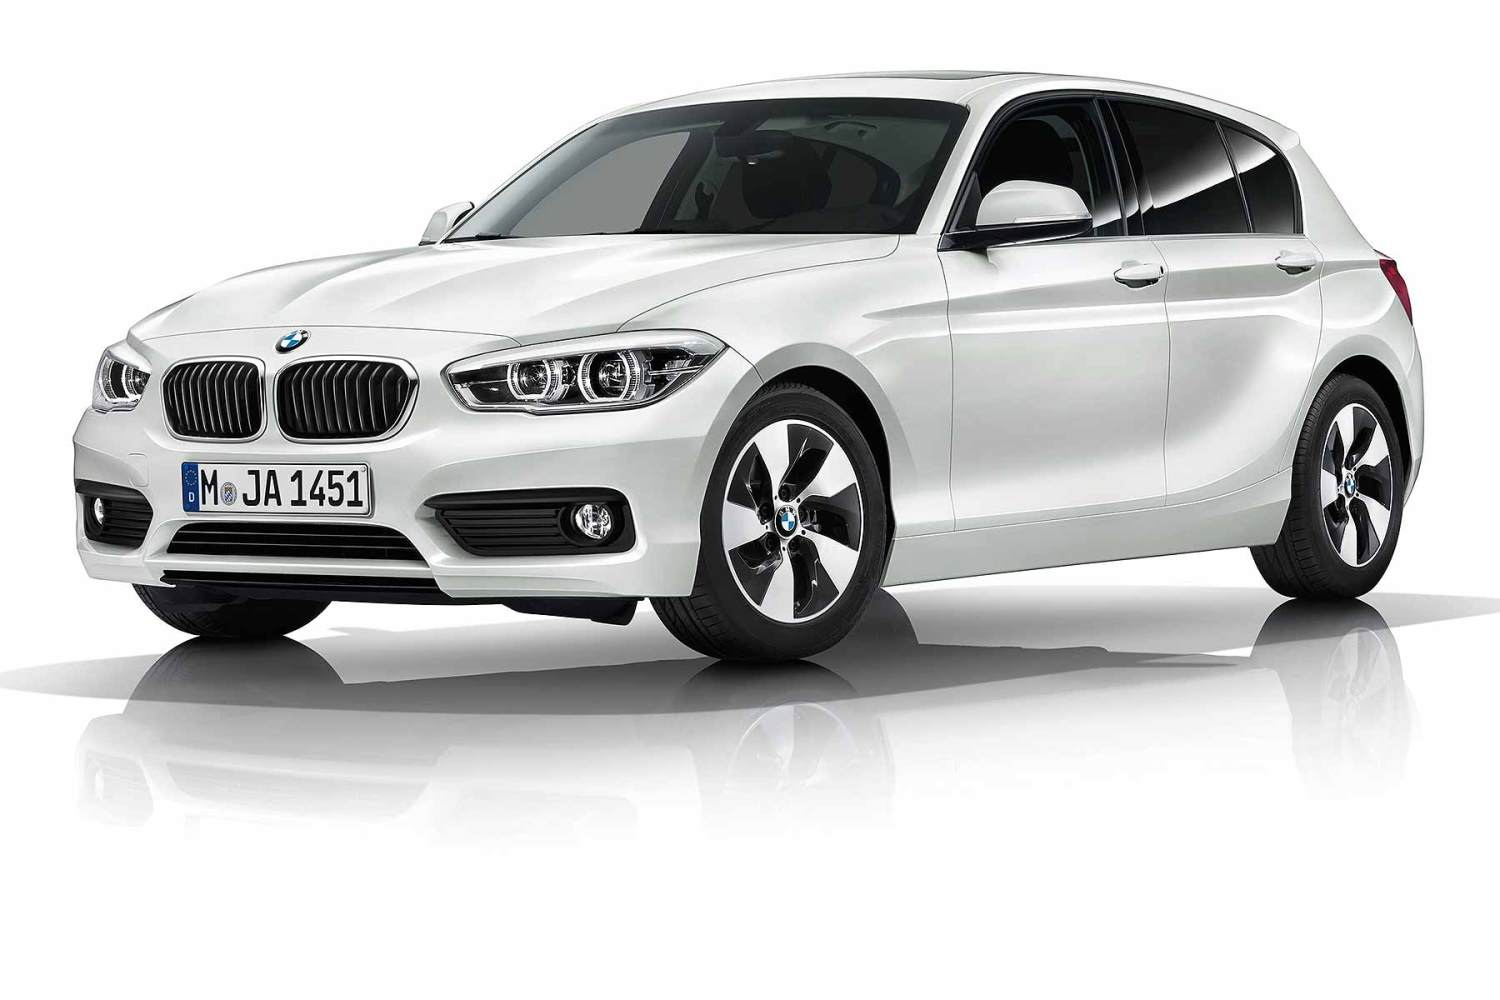 BMW 116d EfficientDynamics Plus 2015